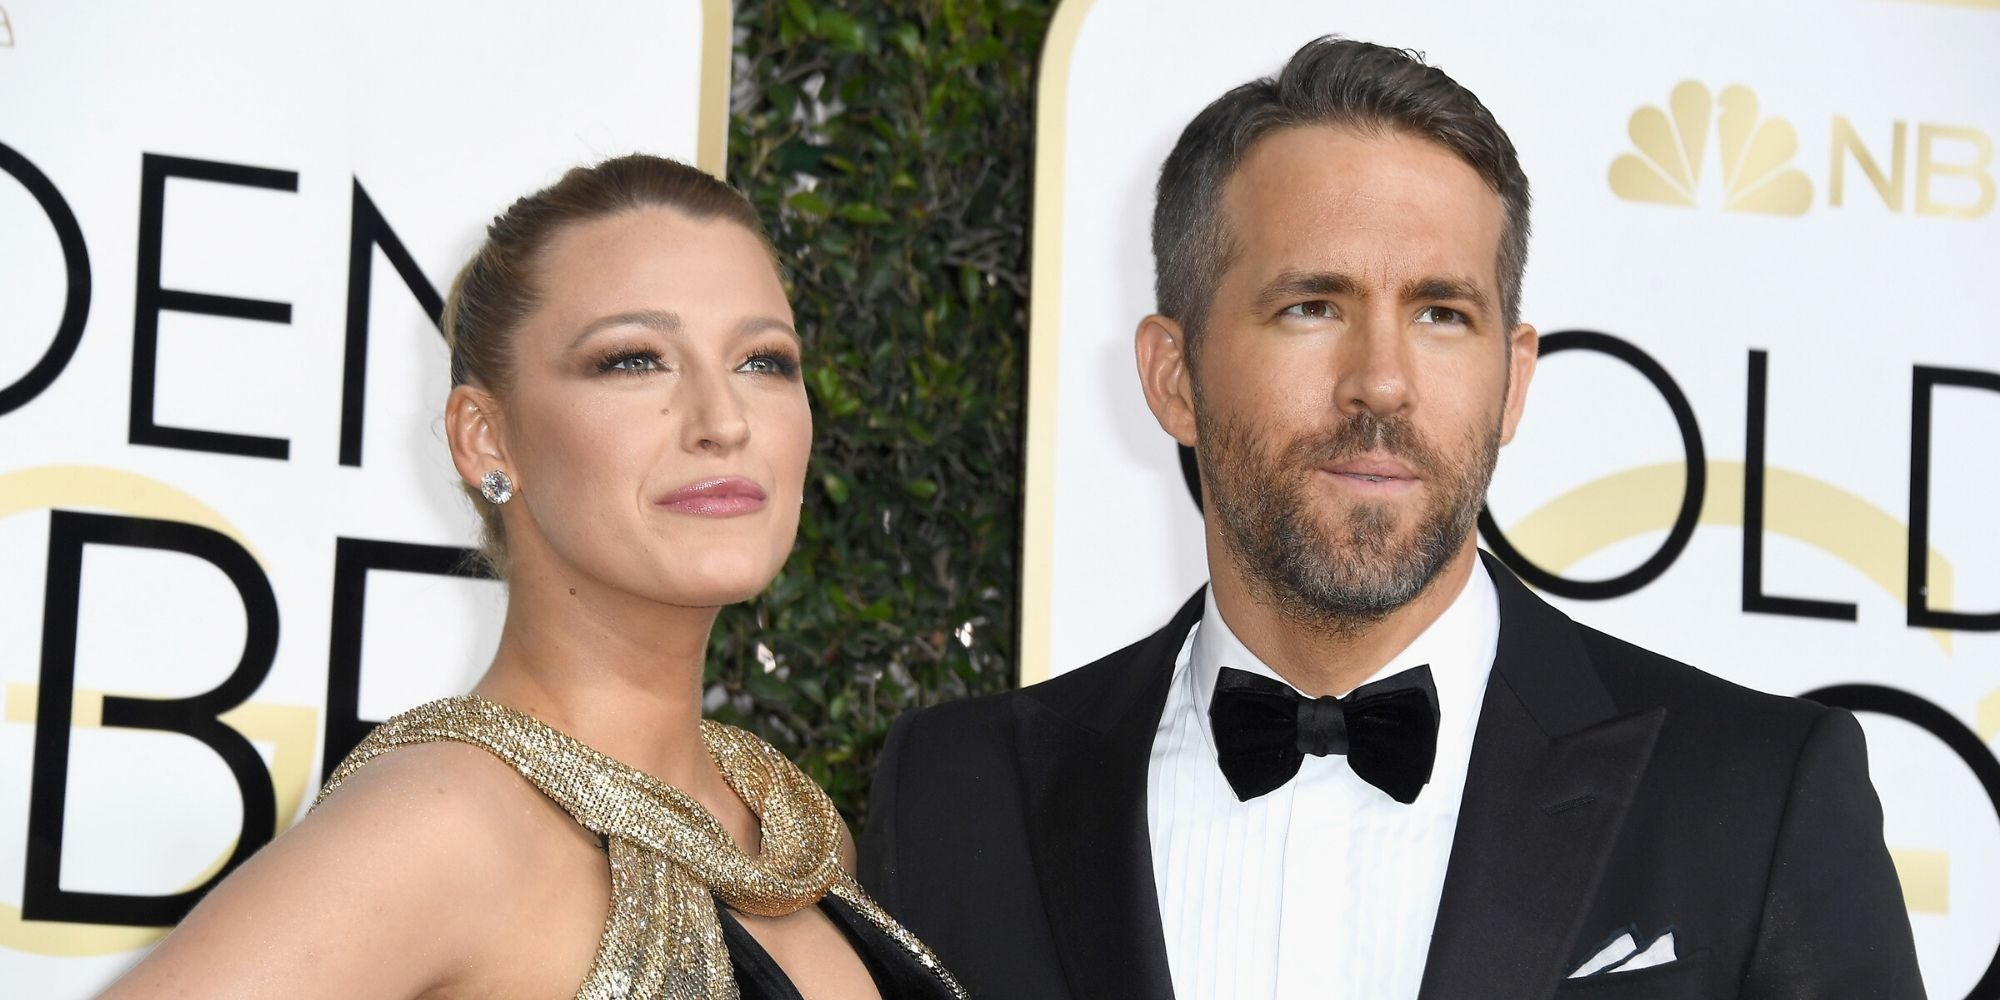 Blake Lively and Ryan Reynolds acknowledge past 'mistakes' on race after getting married at former slave plantation